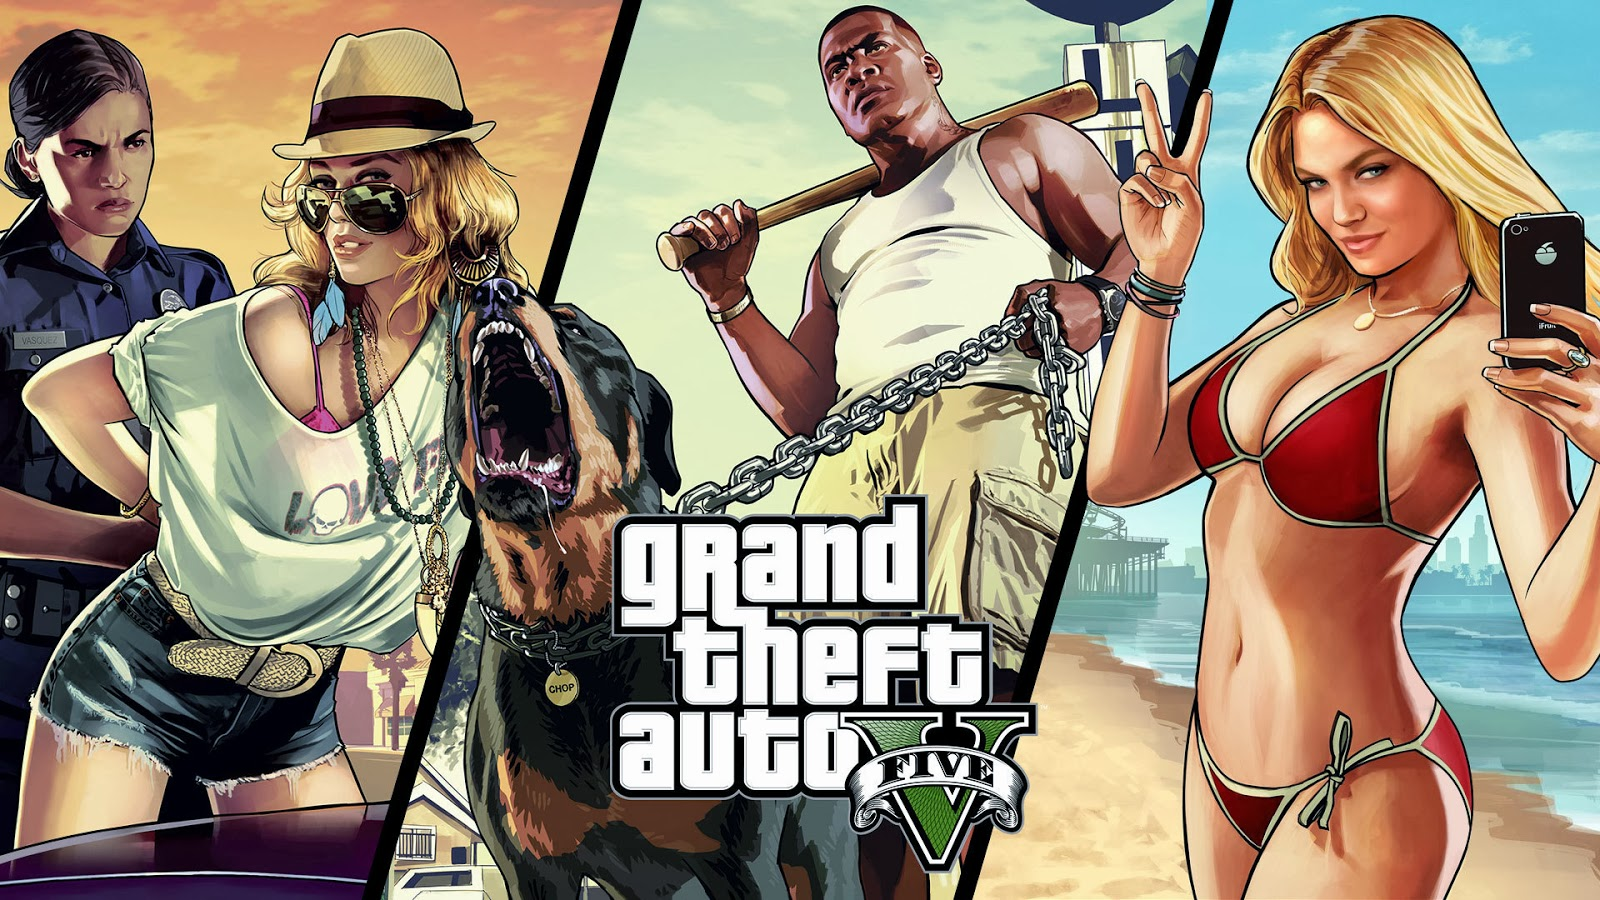 GTA 5 FULL GAME DOWNLOAD NO SURVEY no password